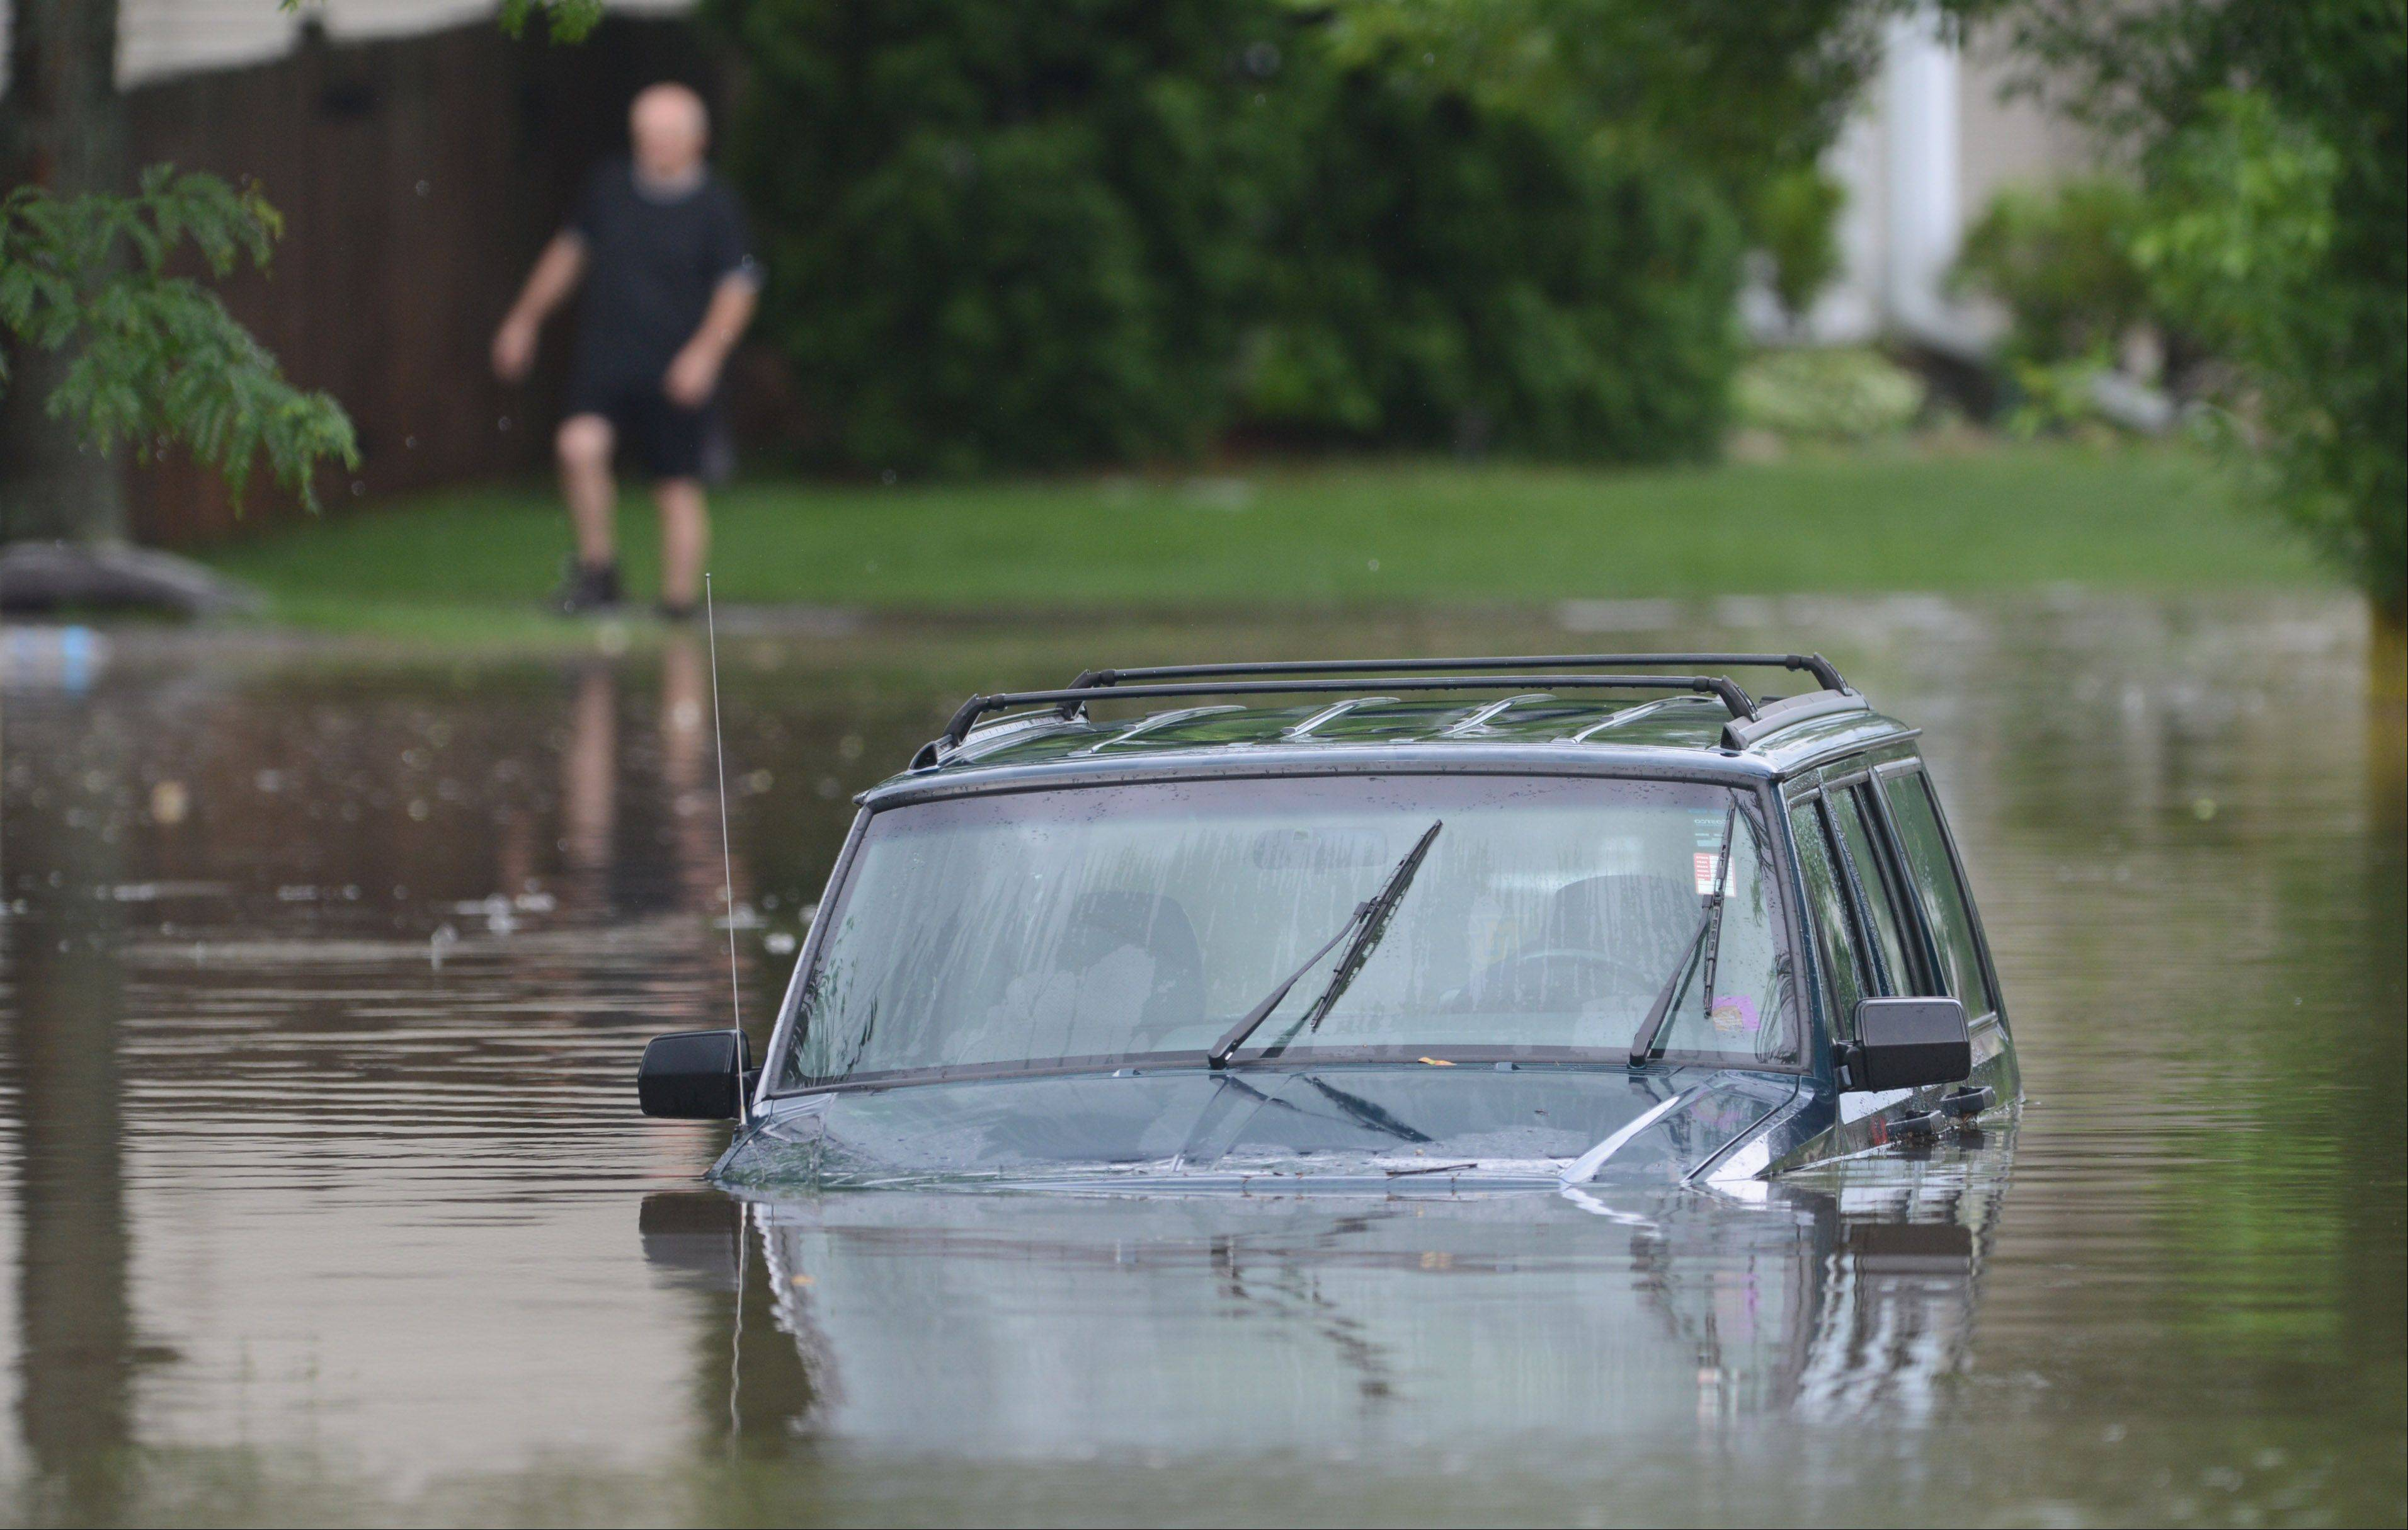 A car is submerged under water along Bristol Trail Road in Lake Zurich Wednesday morning as after heavy rains hit the area.